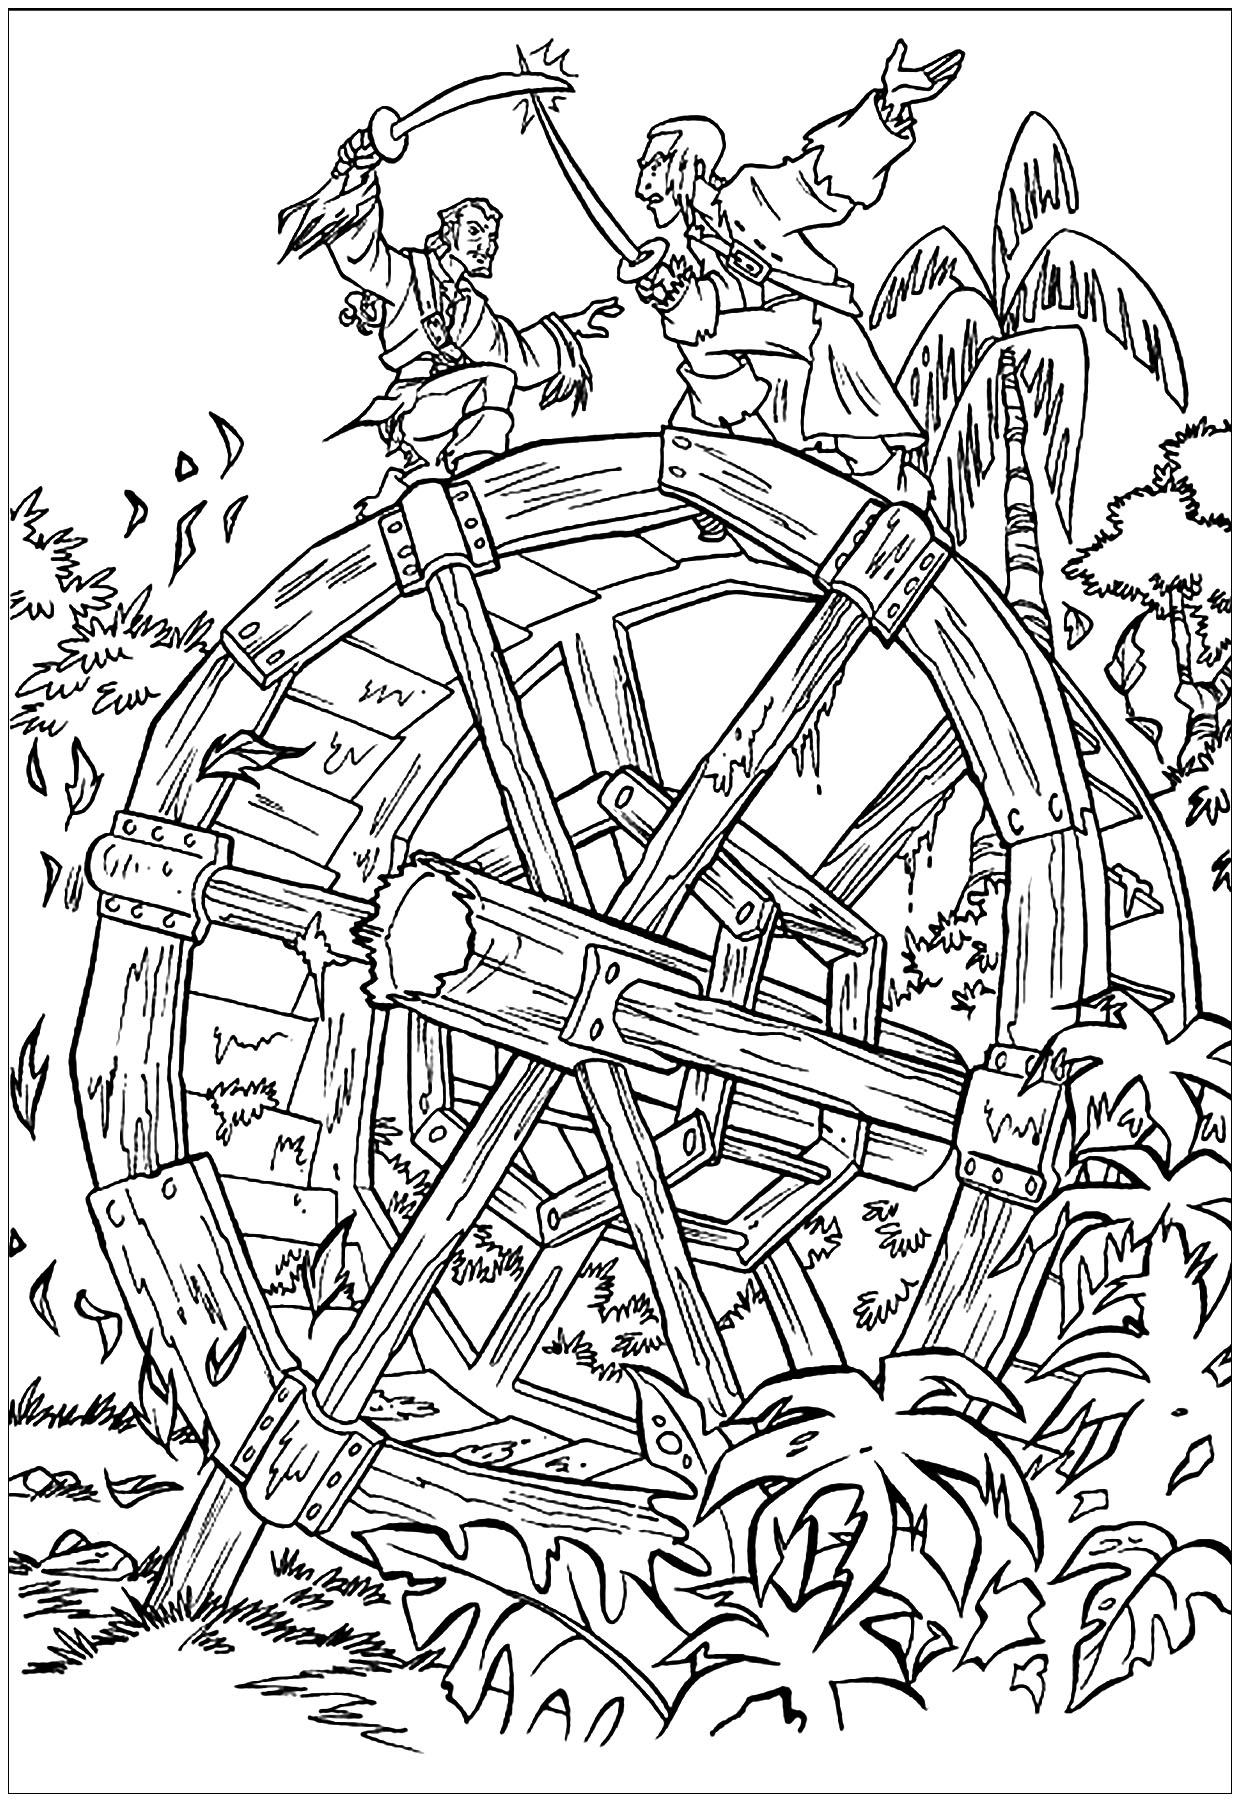 Pirates of the Caribbean coloring page to download for free